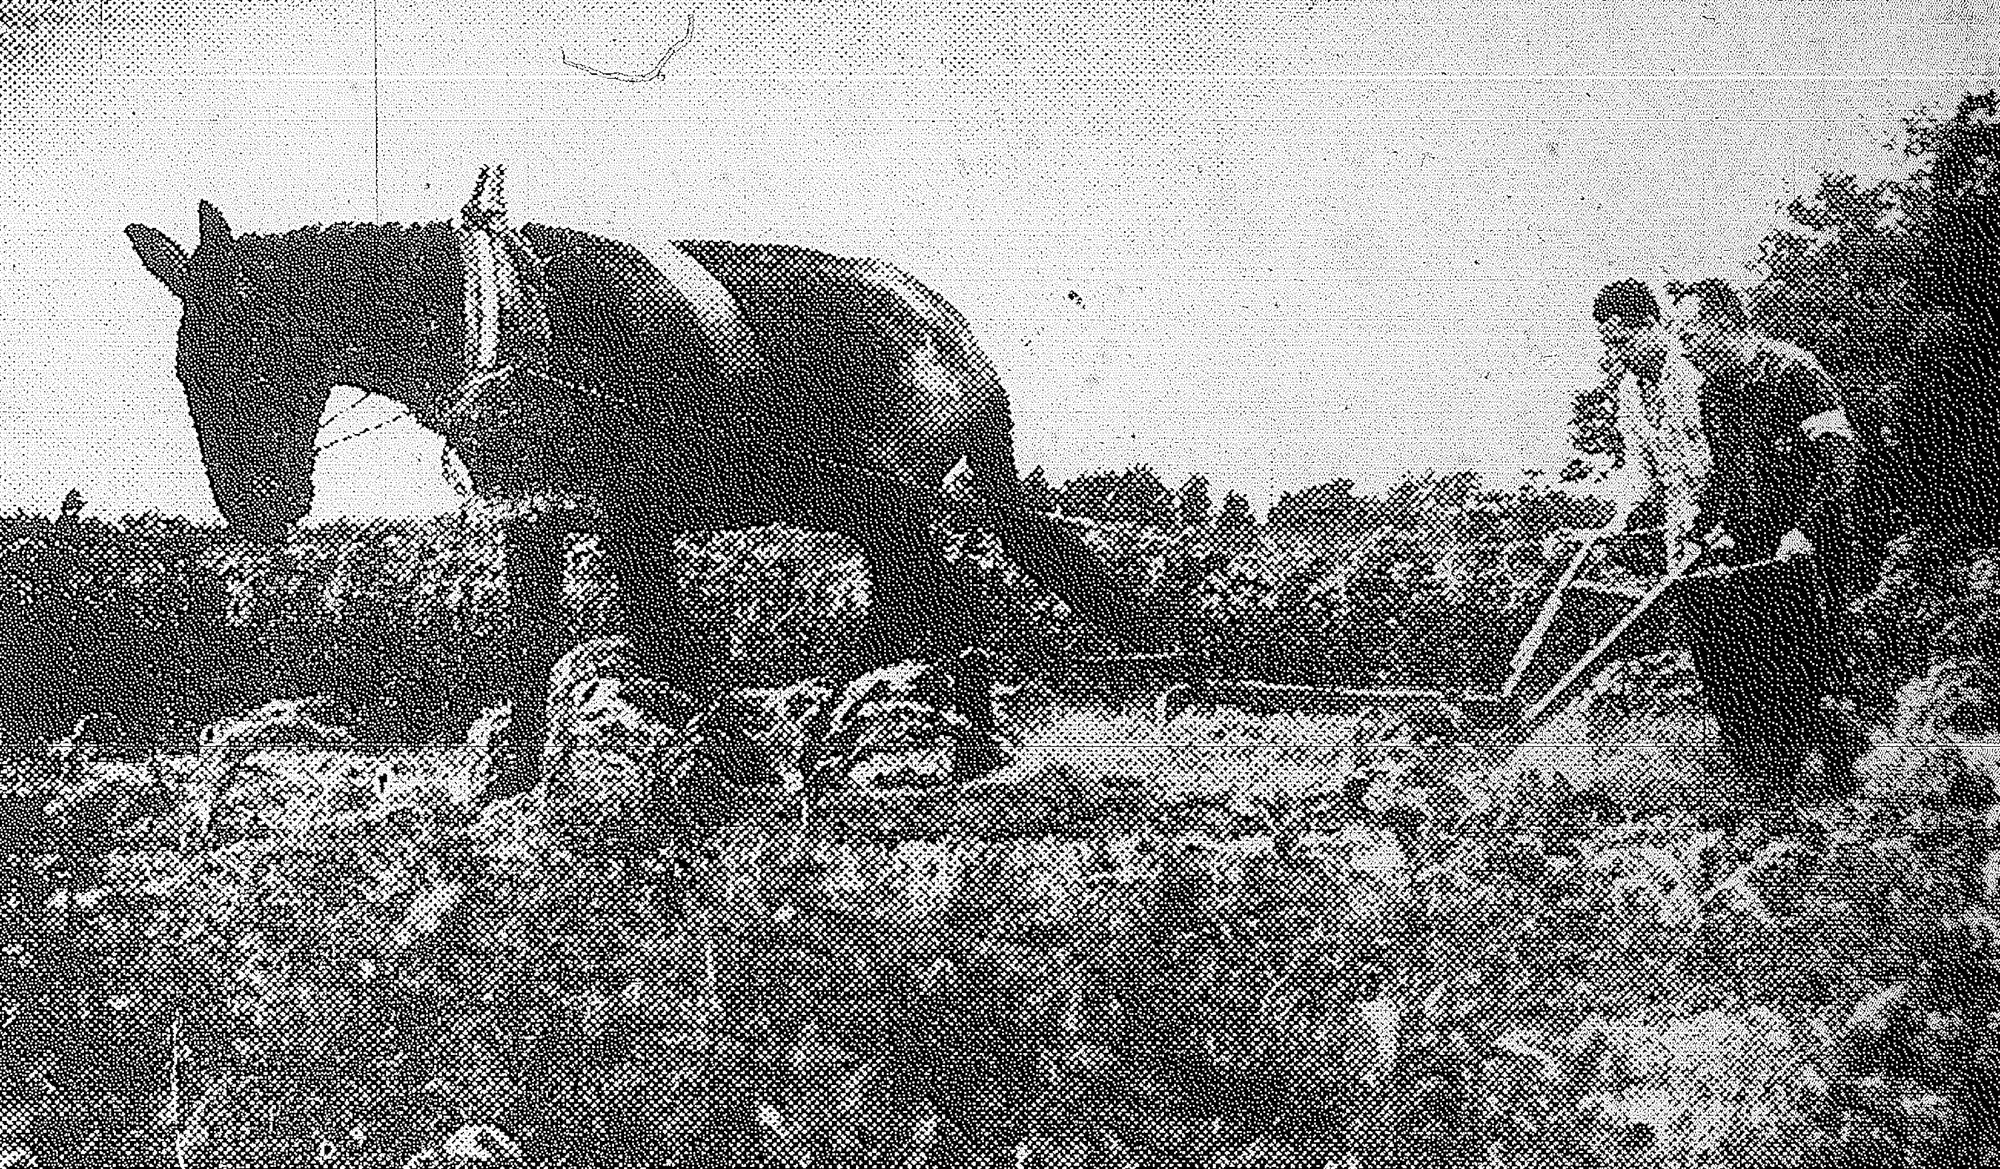 Pete the mule earns his daily oats plowing the victory garden for convalescents at the station hospital. Pvt. Sam Logan of Sumter (wearing arm band) is seen driving the mule while Cpl. Richard B. Robertson takes over the plow in this photo by Shaw Field News.